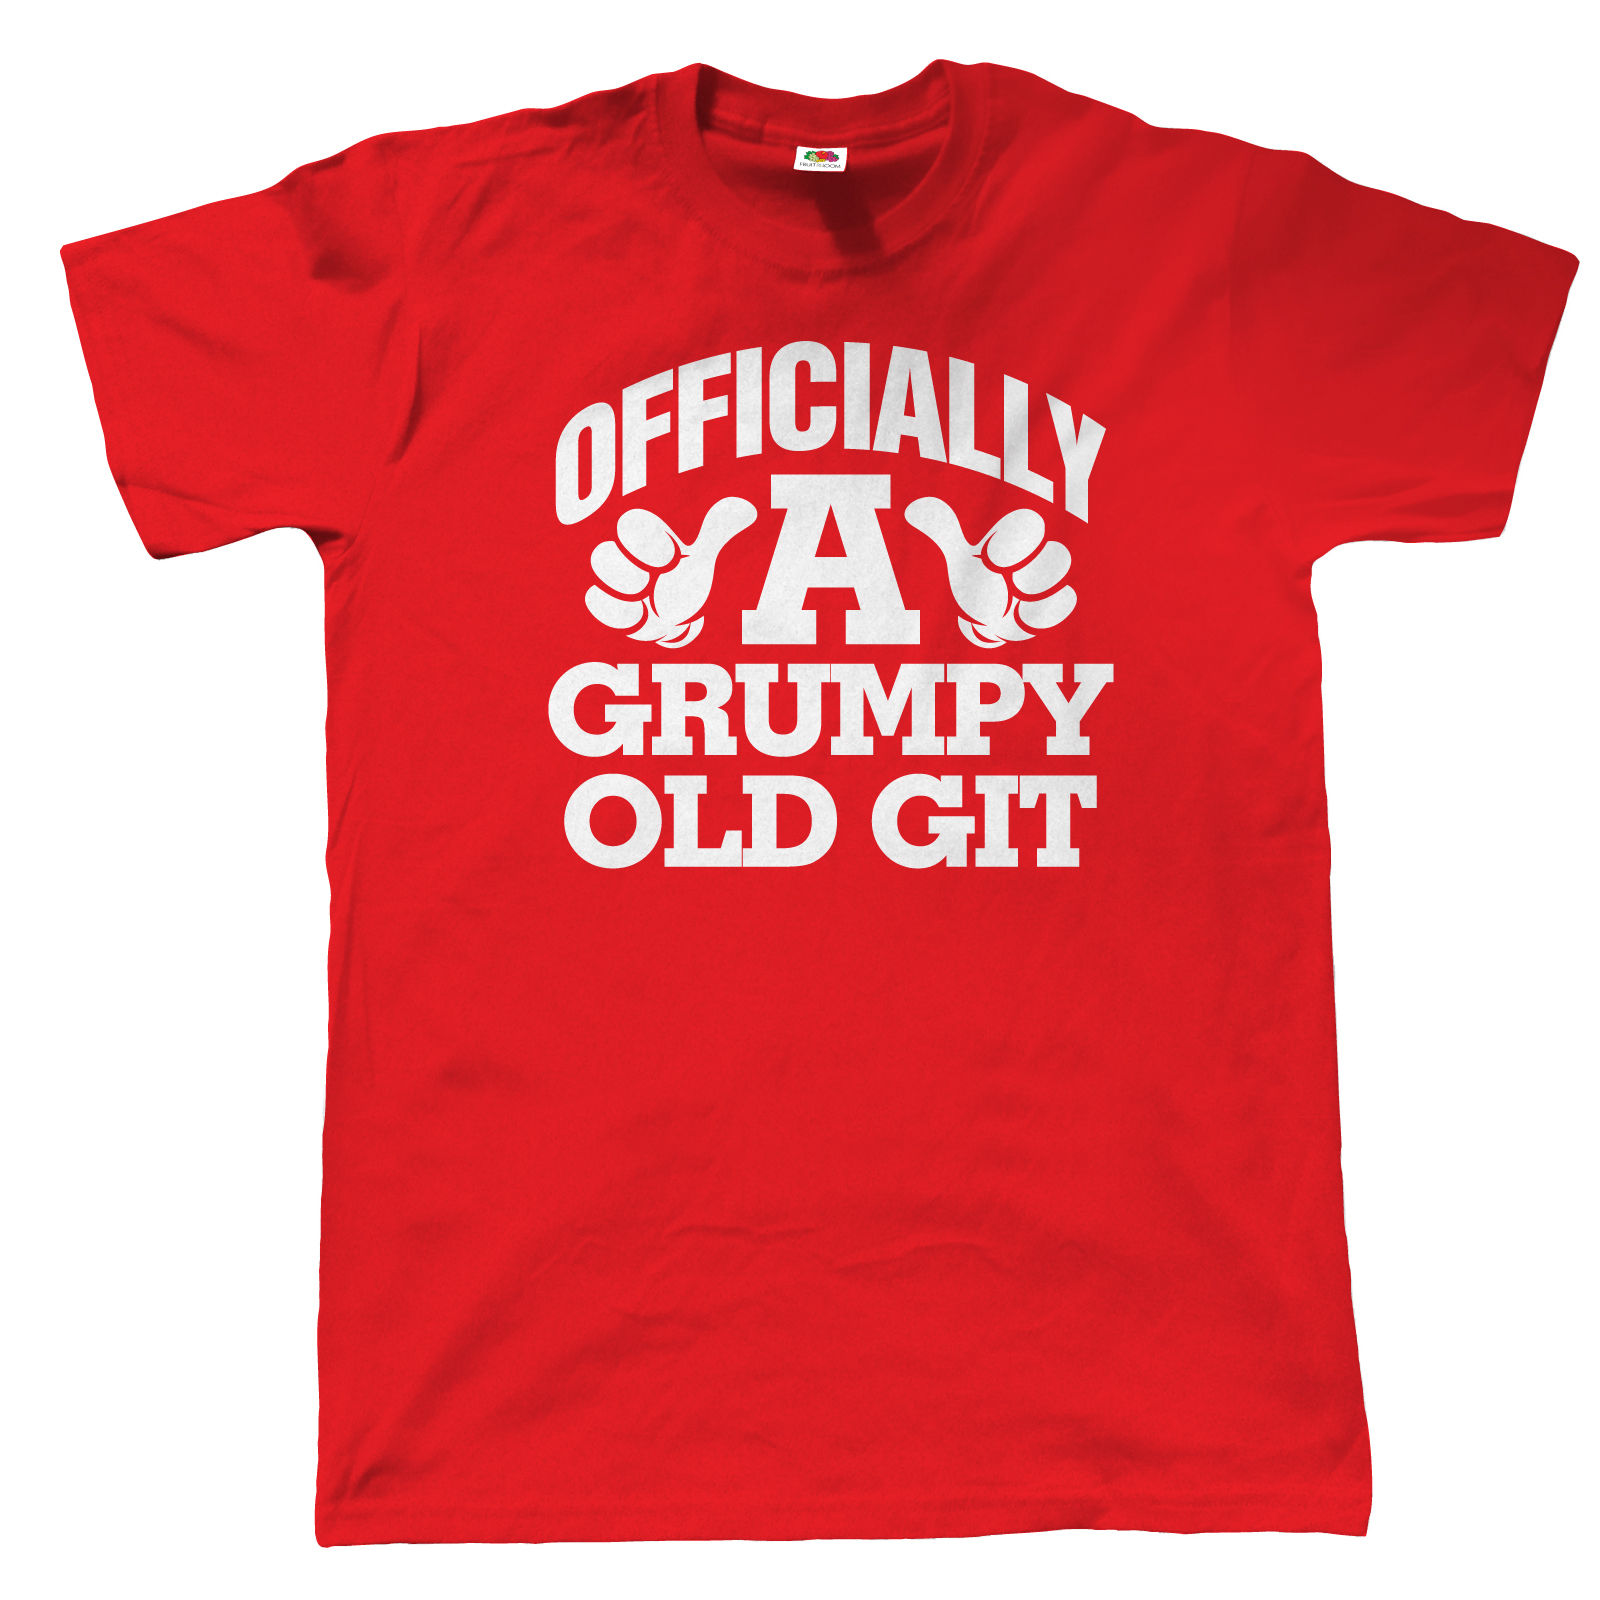 officially a grumpy old git funny t shirt for men - for fathers day